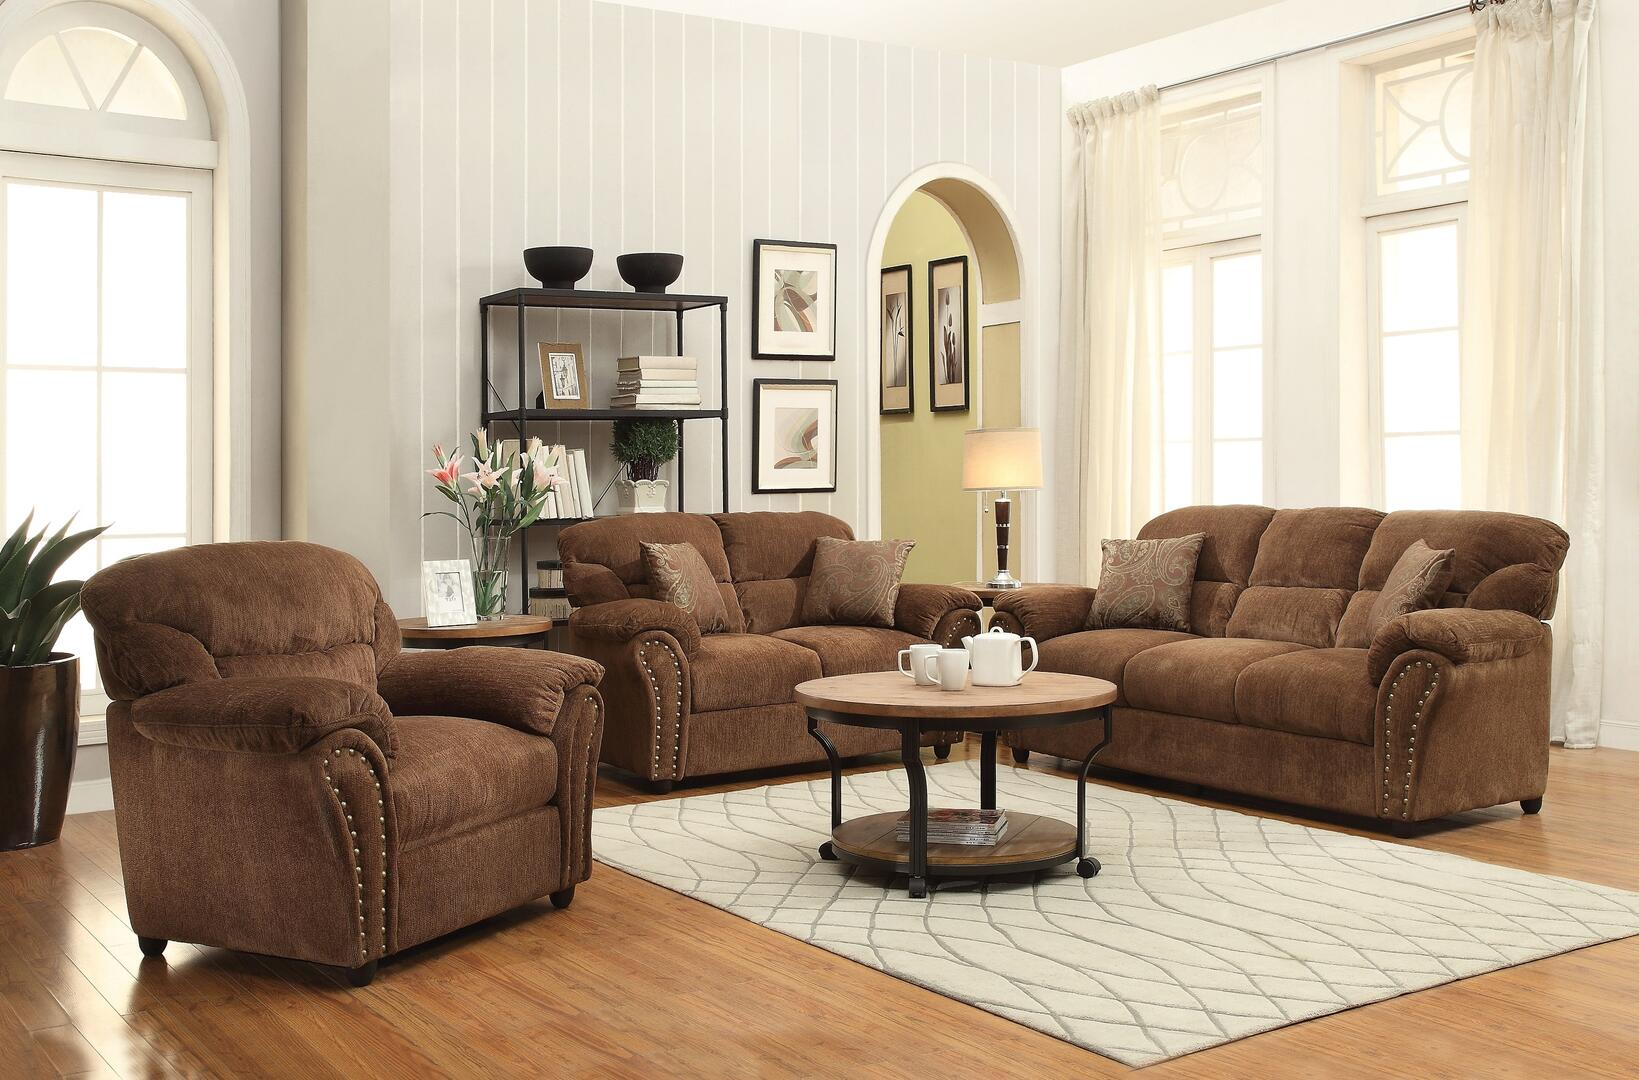 Acme furniture 50130slct patricia living room sets for Living room of satoshi tax